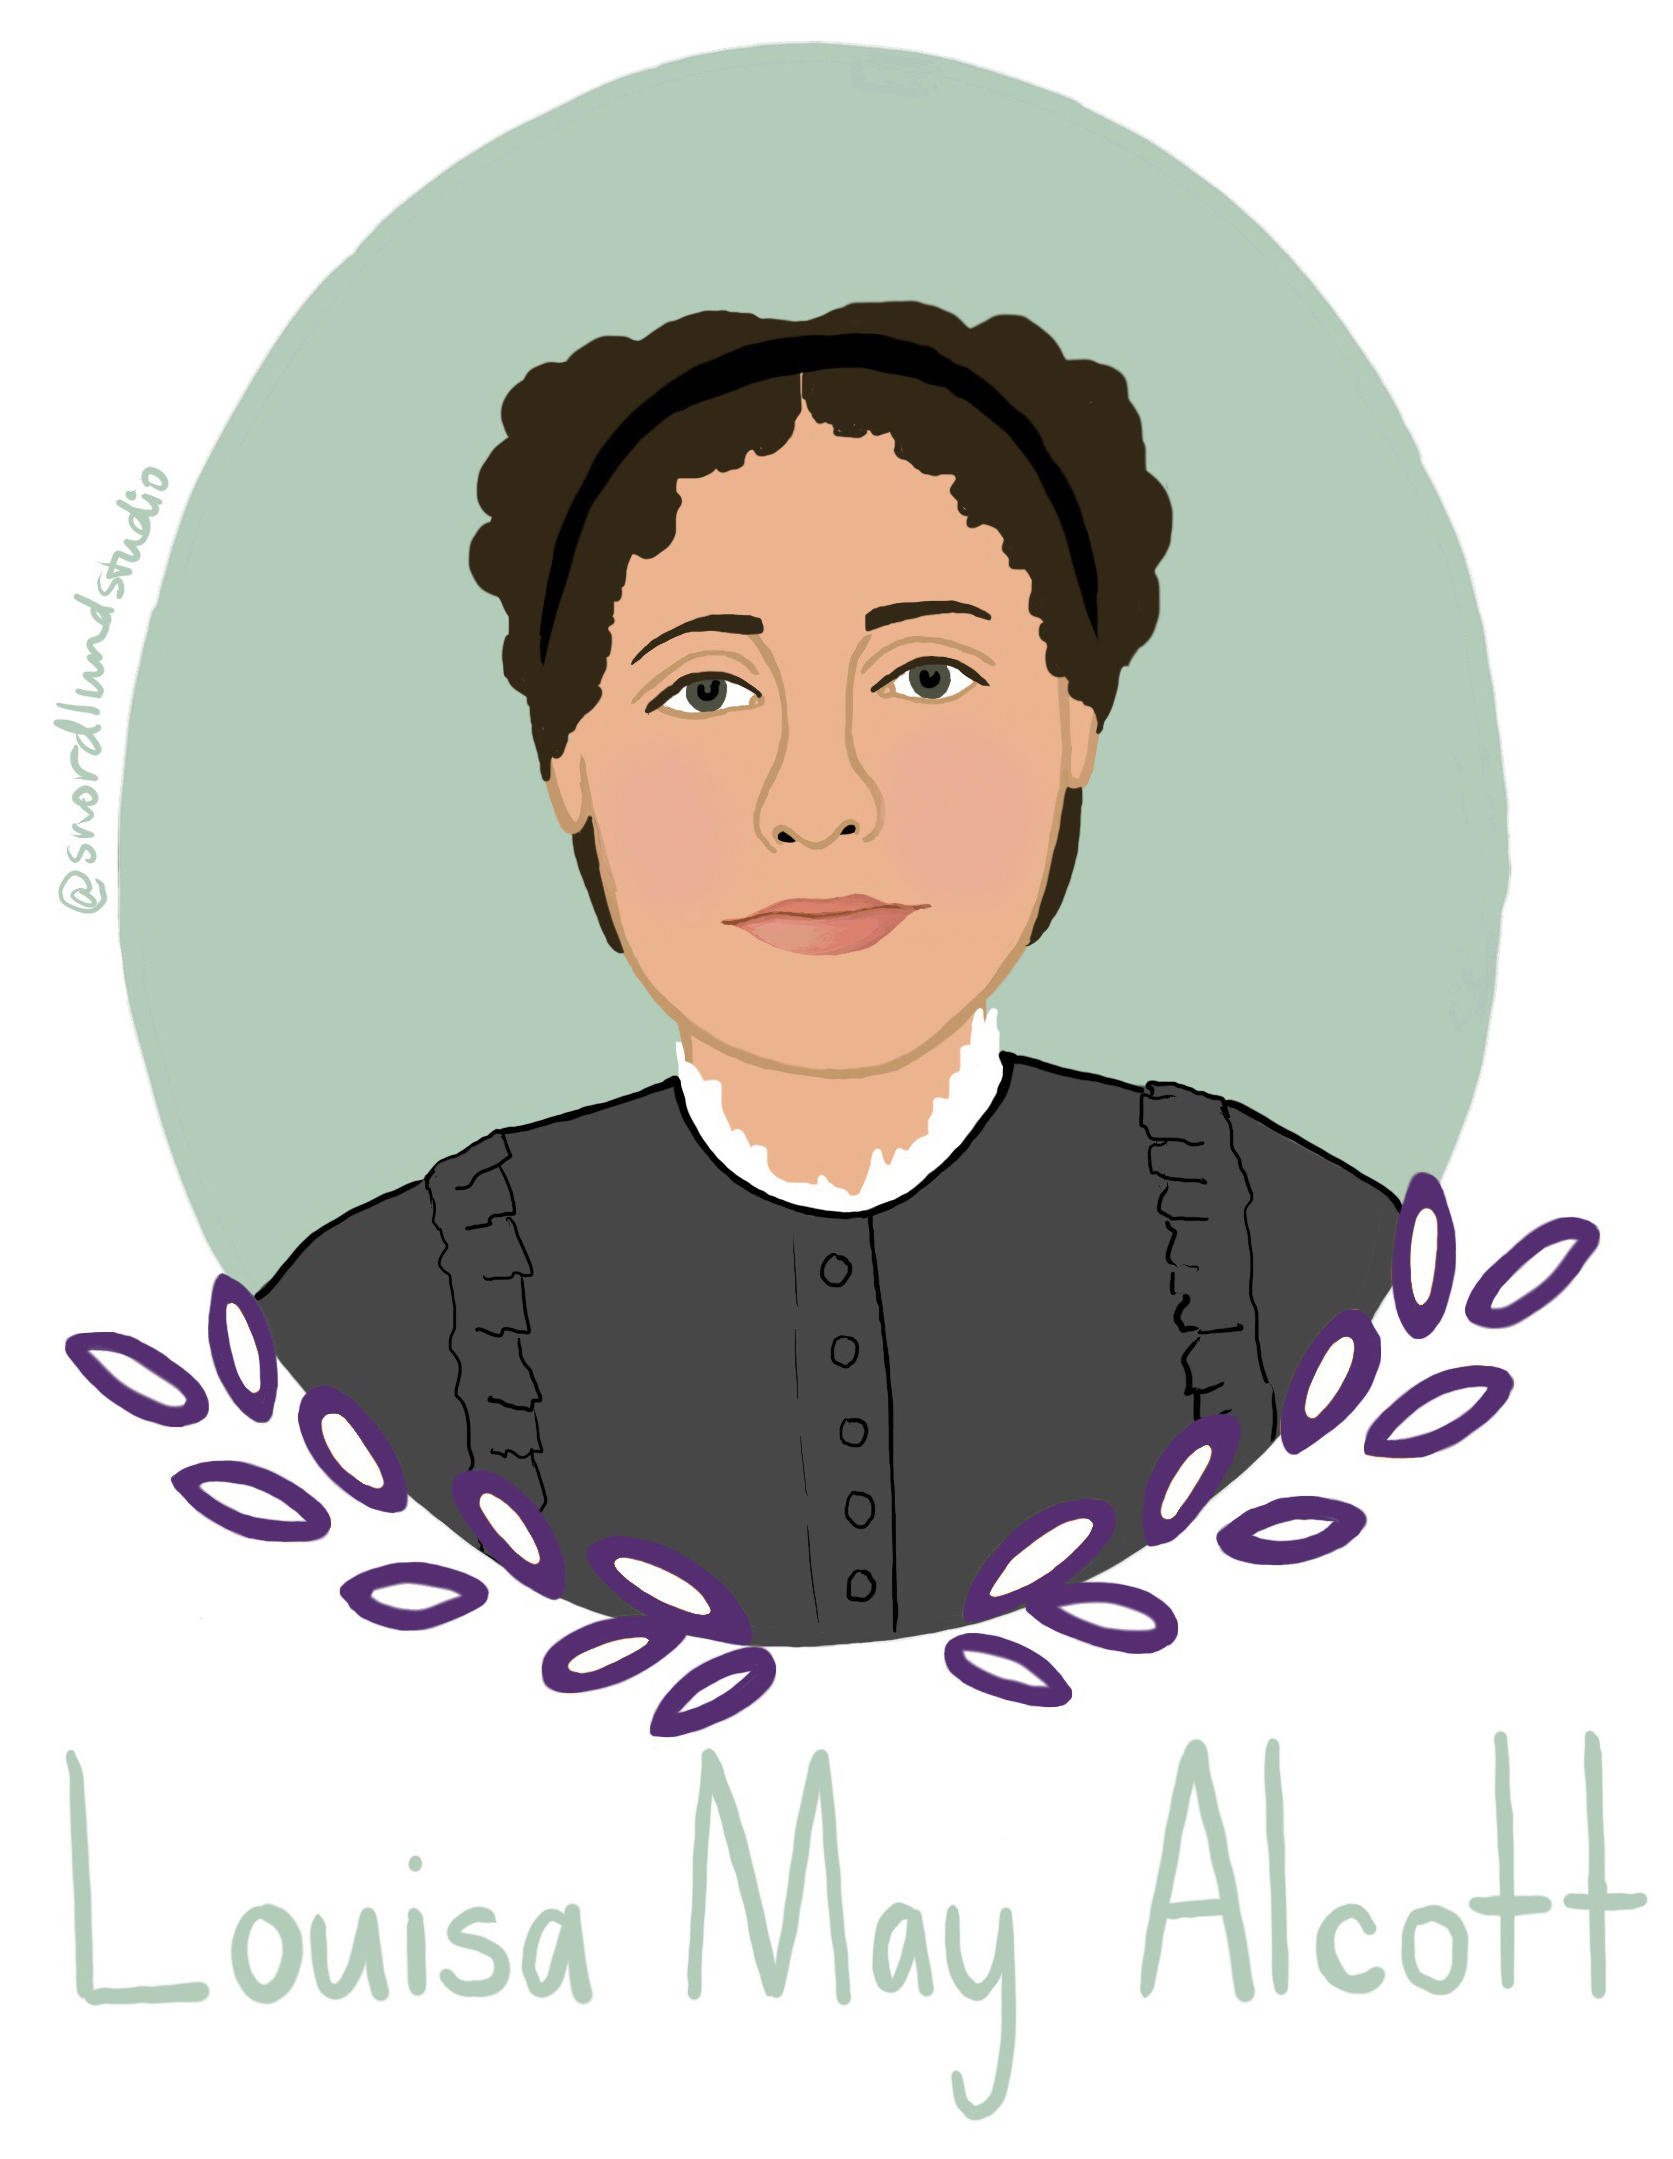 44. Louisa May Alcott - Louisa May Alcott (1832-1888) was a writer, teacher, seamstress, and nurse. She is most well-known for writing Little Women.